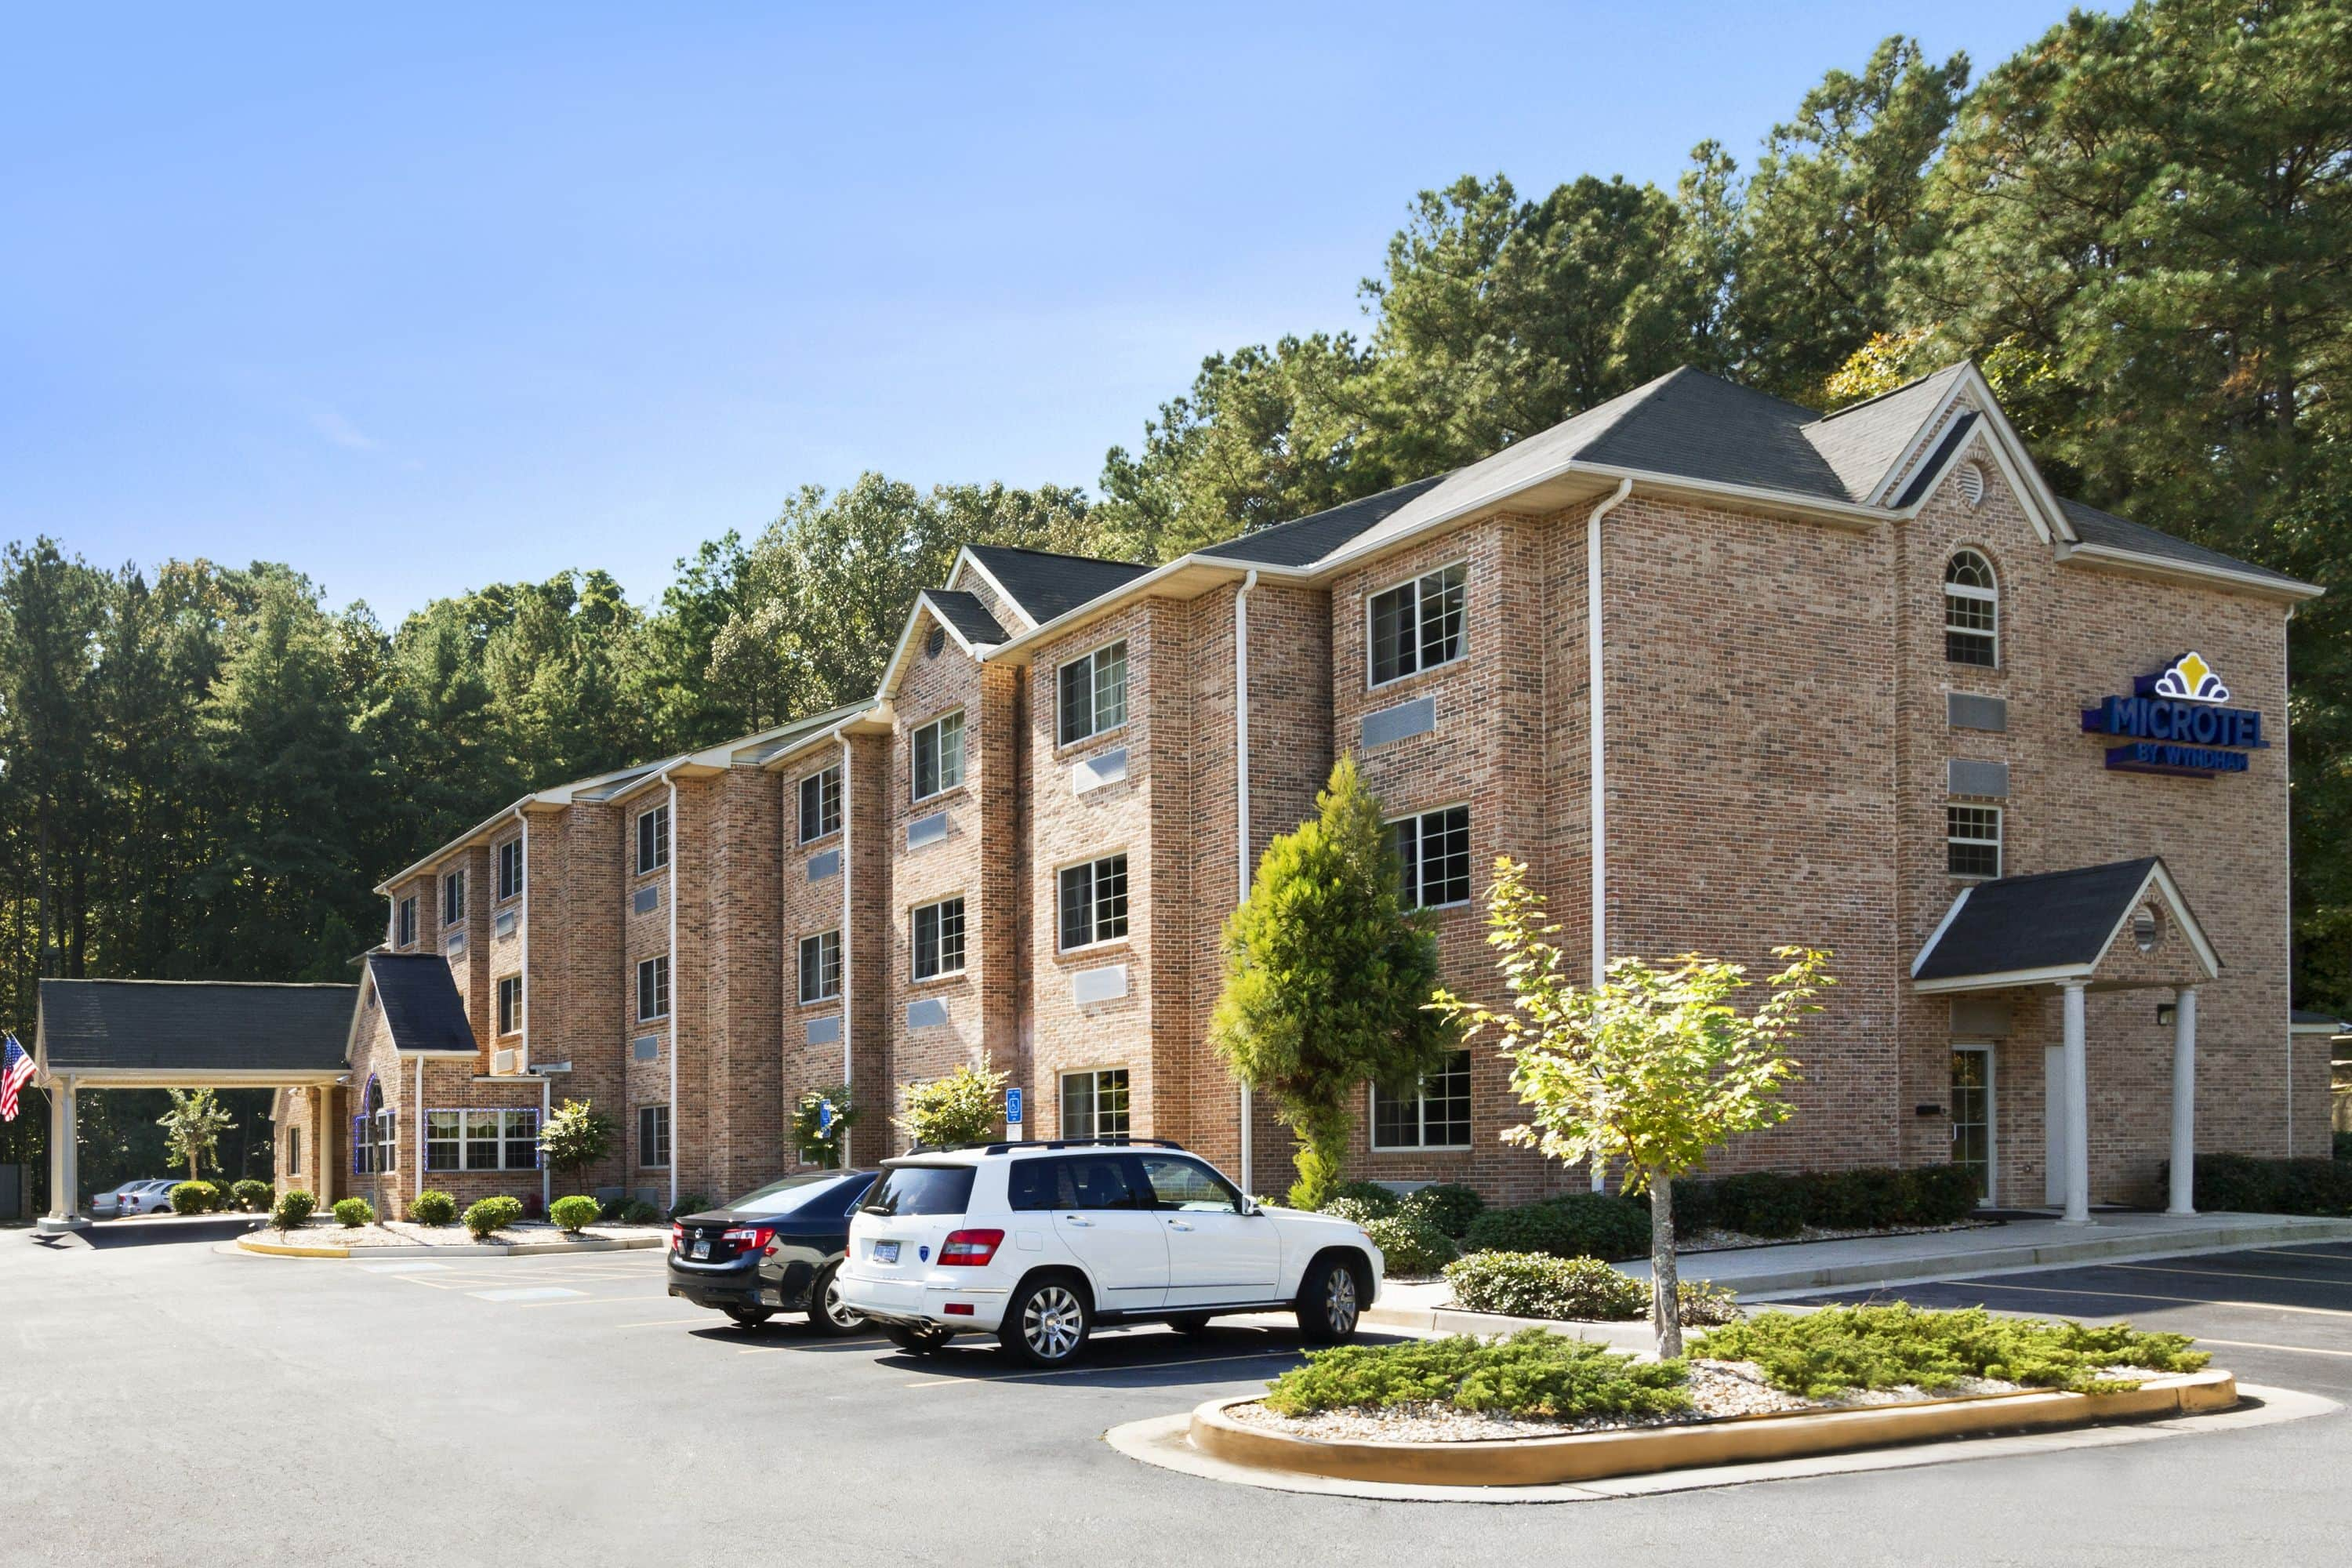 Exterior Of Microtel Inn U0026 Suites By Wyndham Lithonia/Stone Mountain Hotel  In Lithonia,